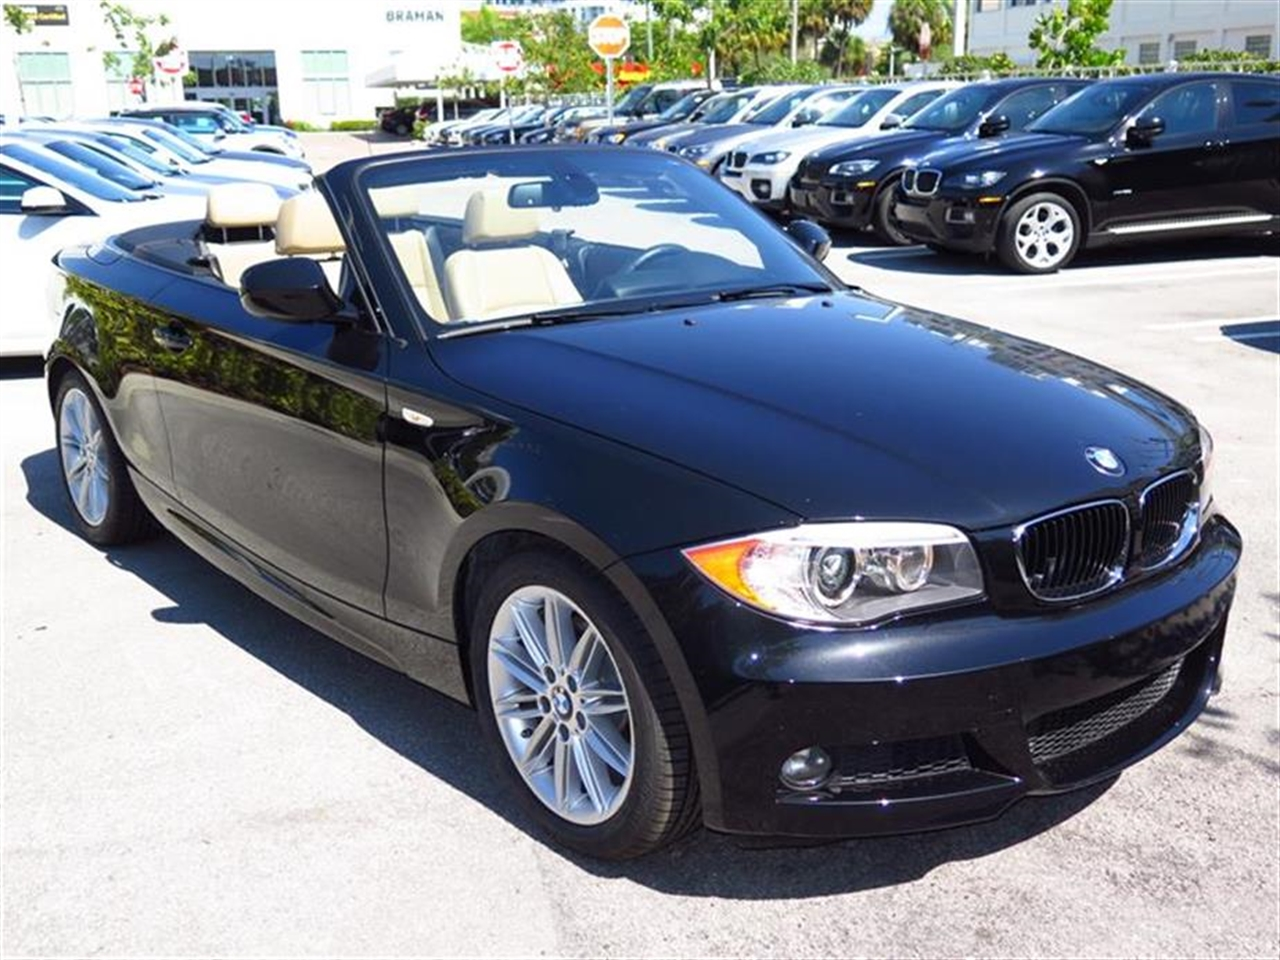 2012 BMW 1 SERIES 2dr Conv 128i 15460 miles 3-spoke leather-wrapped multi-function sport steering